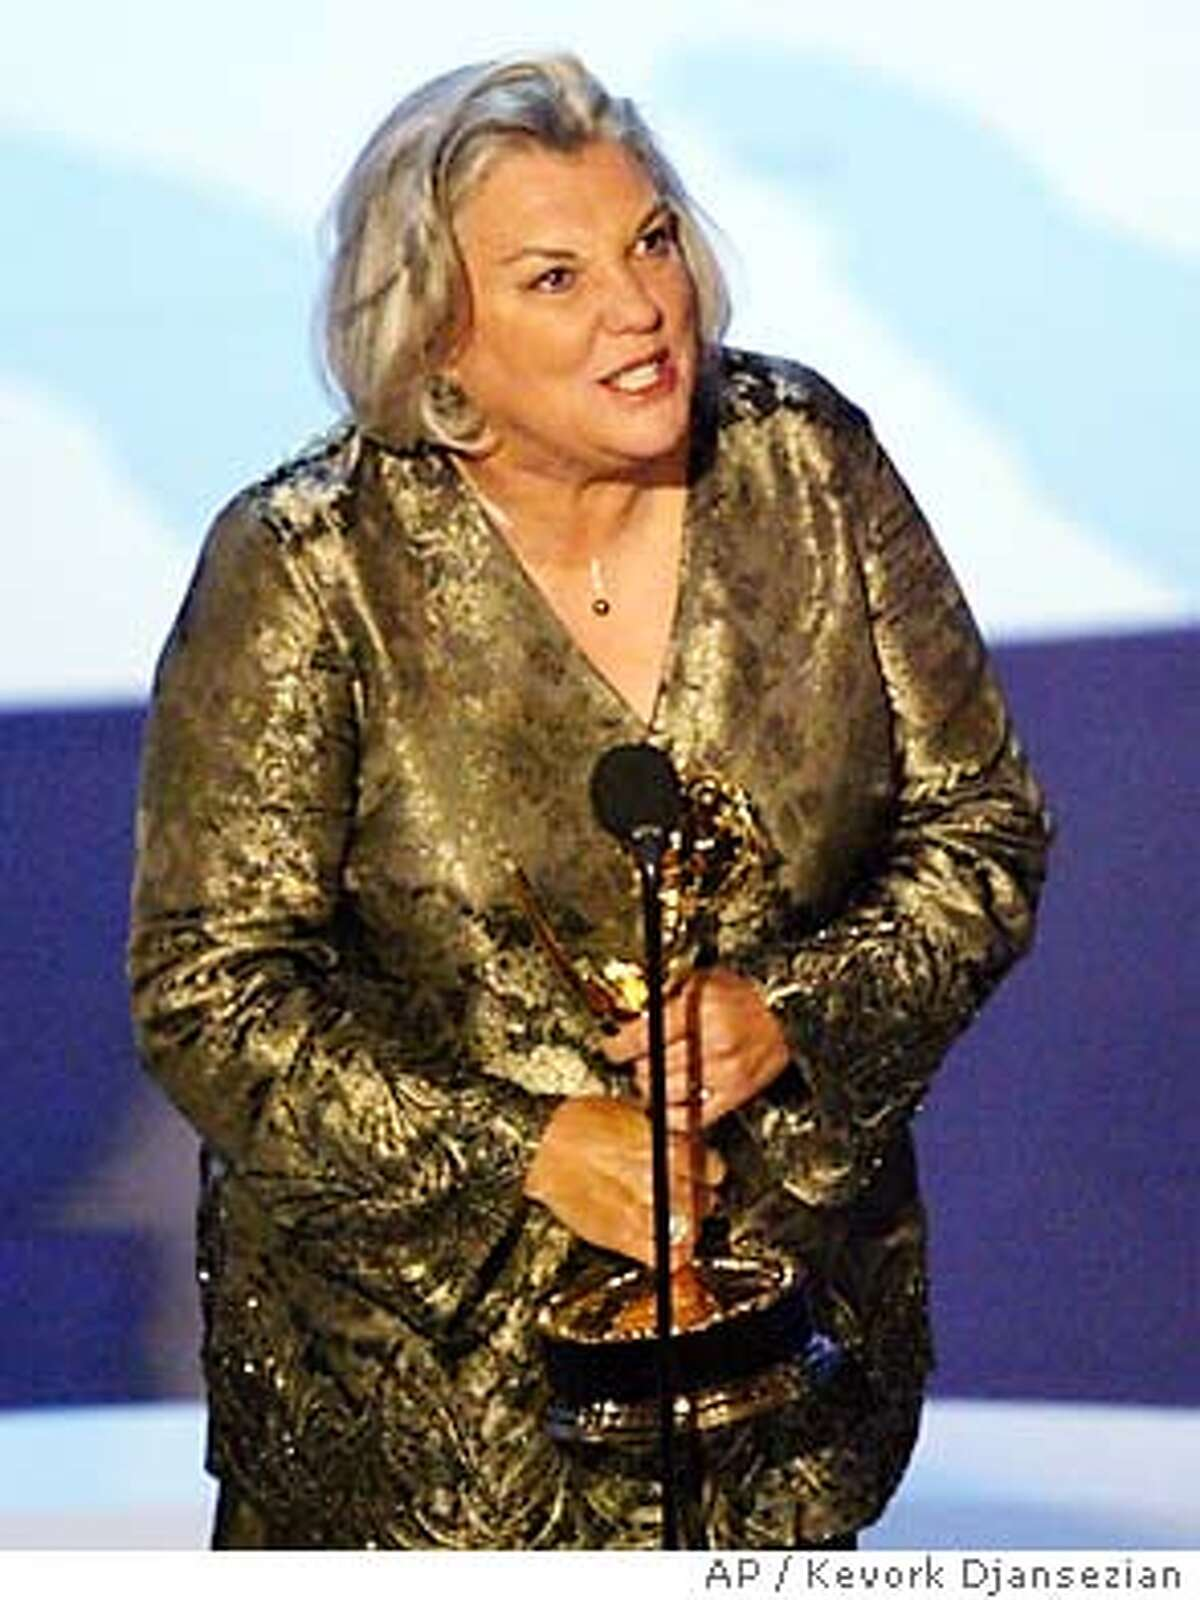 Tyne Daly accepts the award for outstanding supporting actress in a drama series for her work on Judging Amy at the 55th Annual Primetime Emmy Awards Sunday, Sept. 21, 2003, at the Shrine Auditorium in Los Angeles. (AP Photo/Kevork Djansezian)